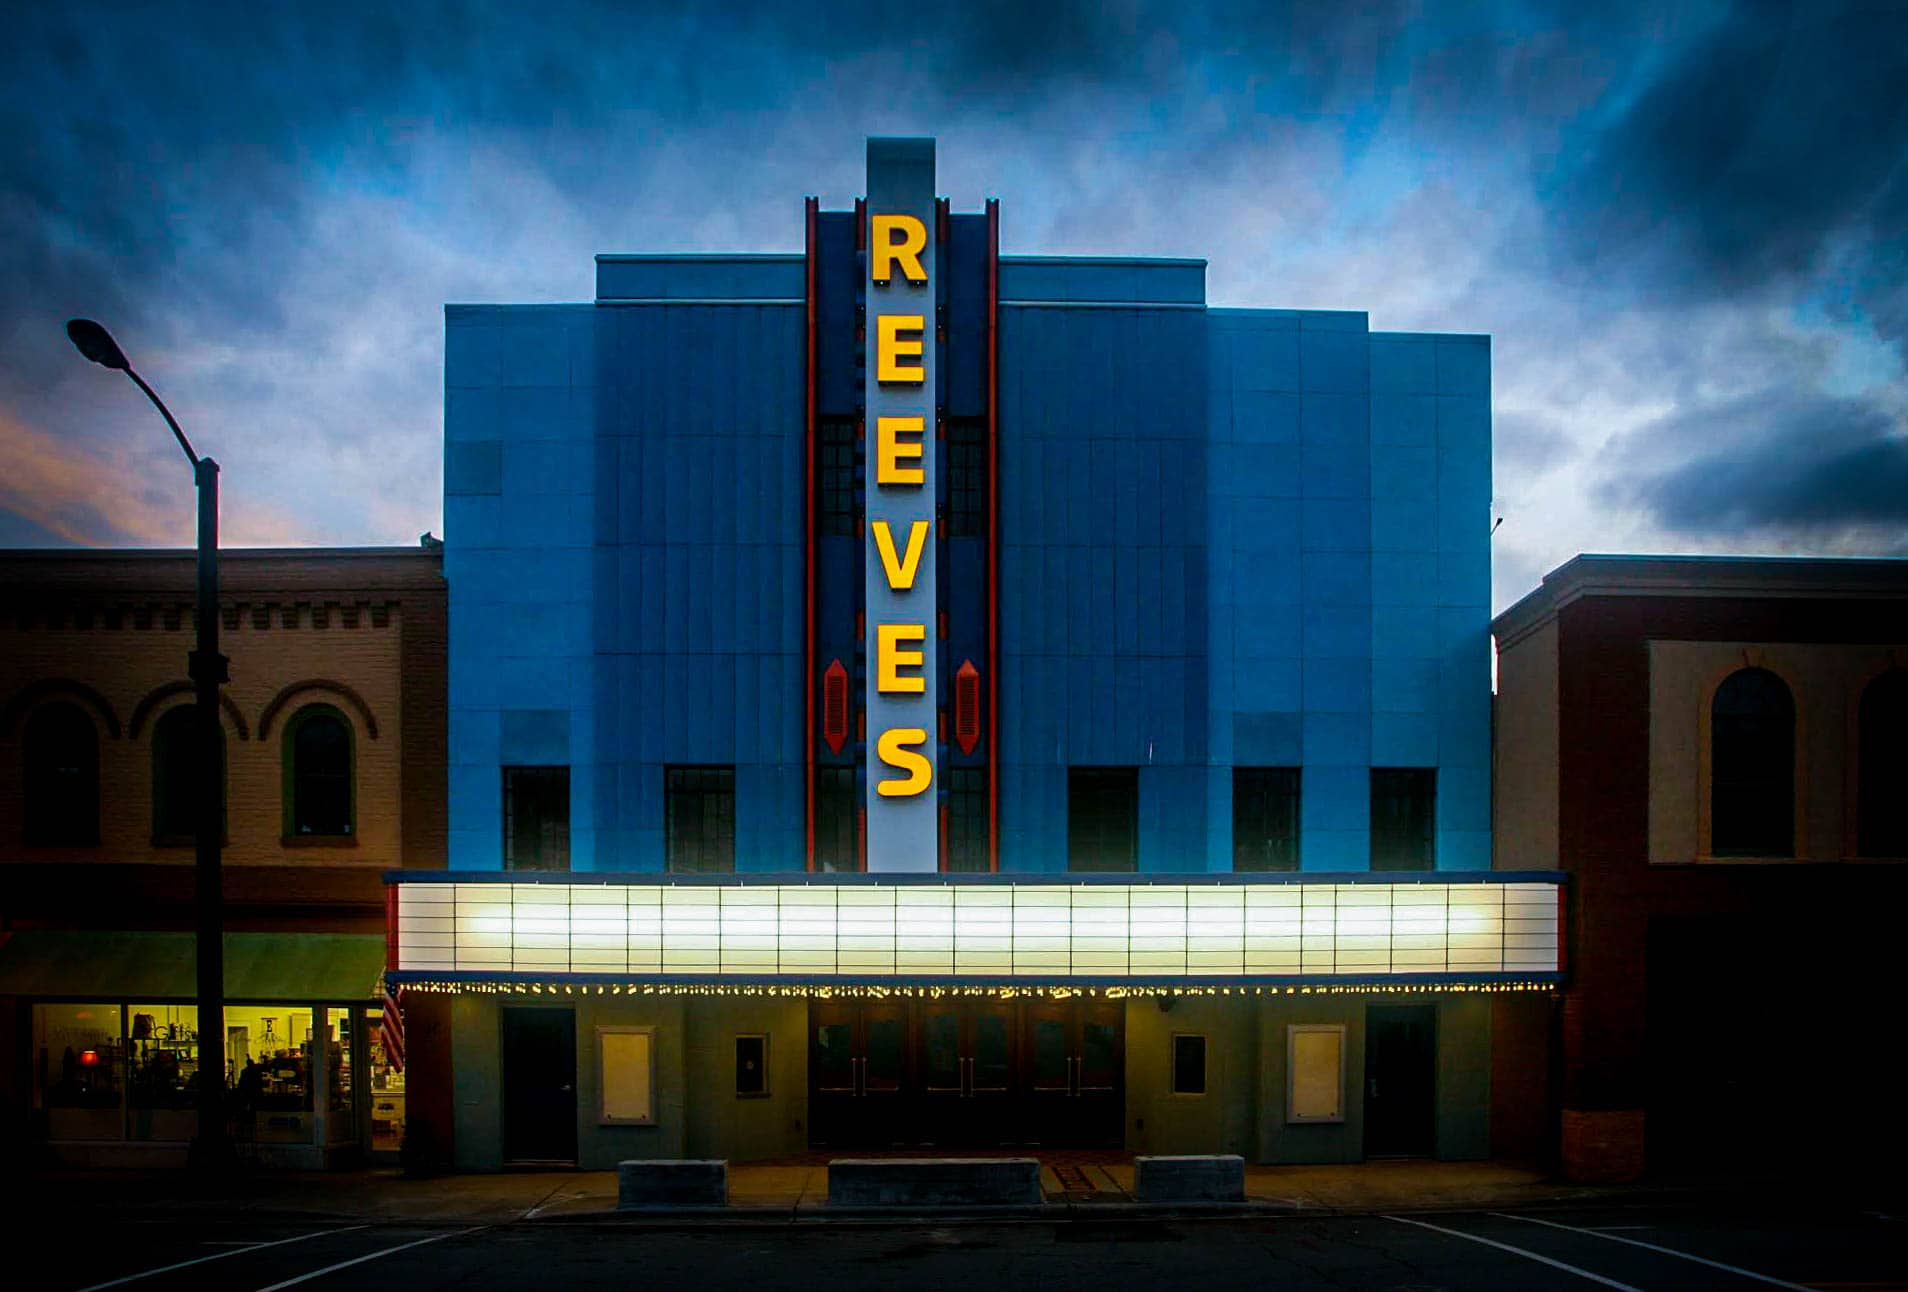 Reeves Theater & Cafe